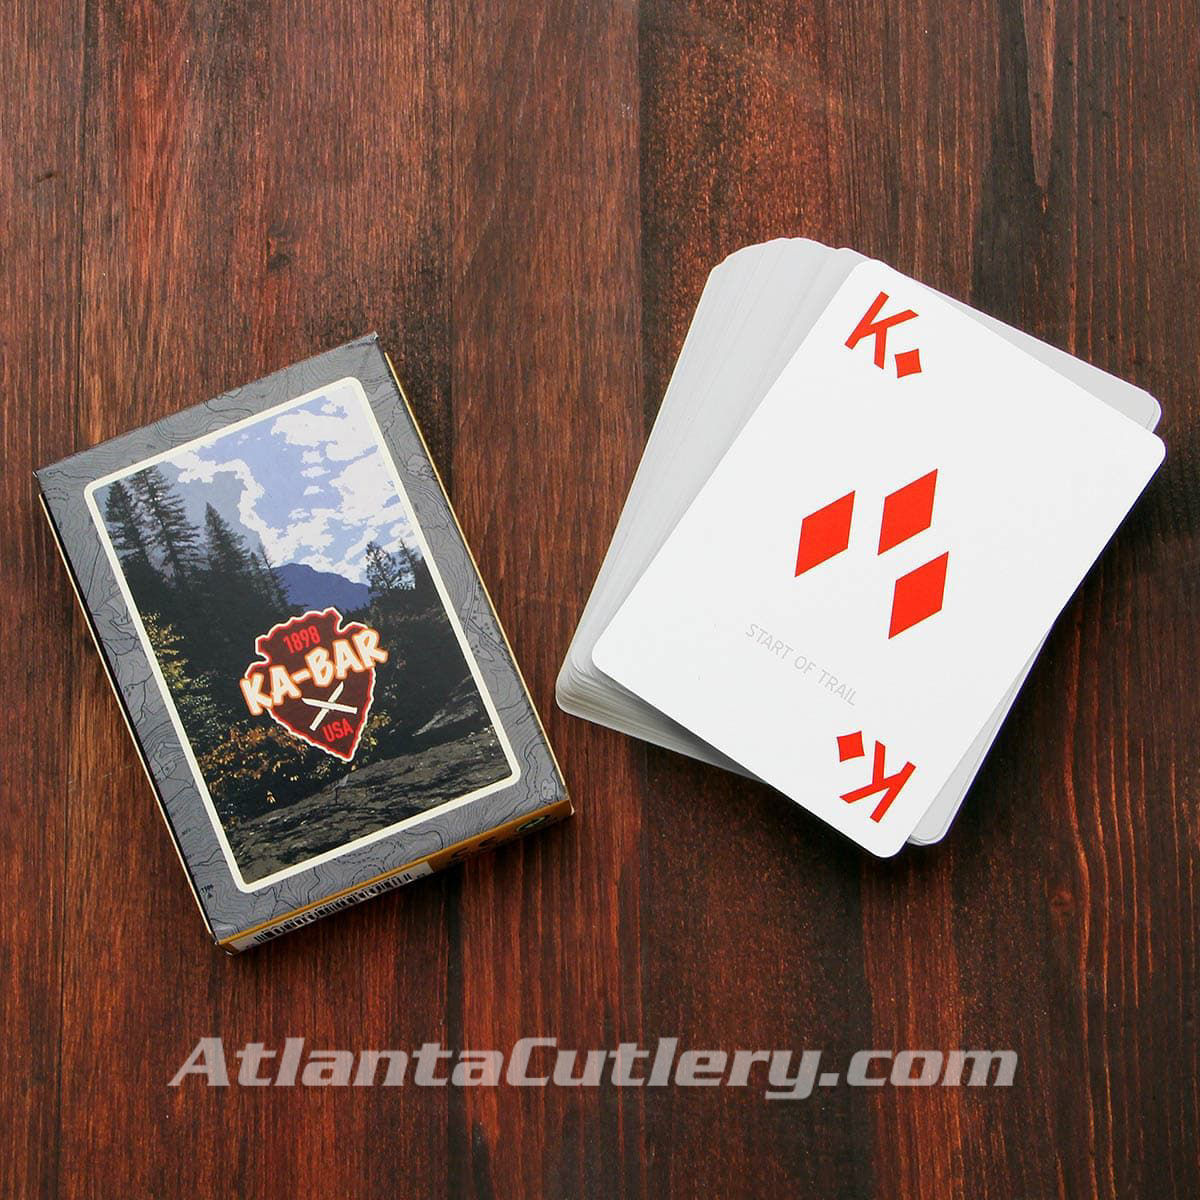 KA-BAR Water Resistant Trail Blaze Playing Cards